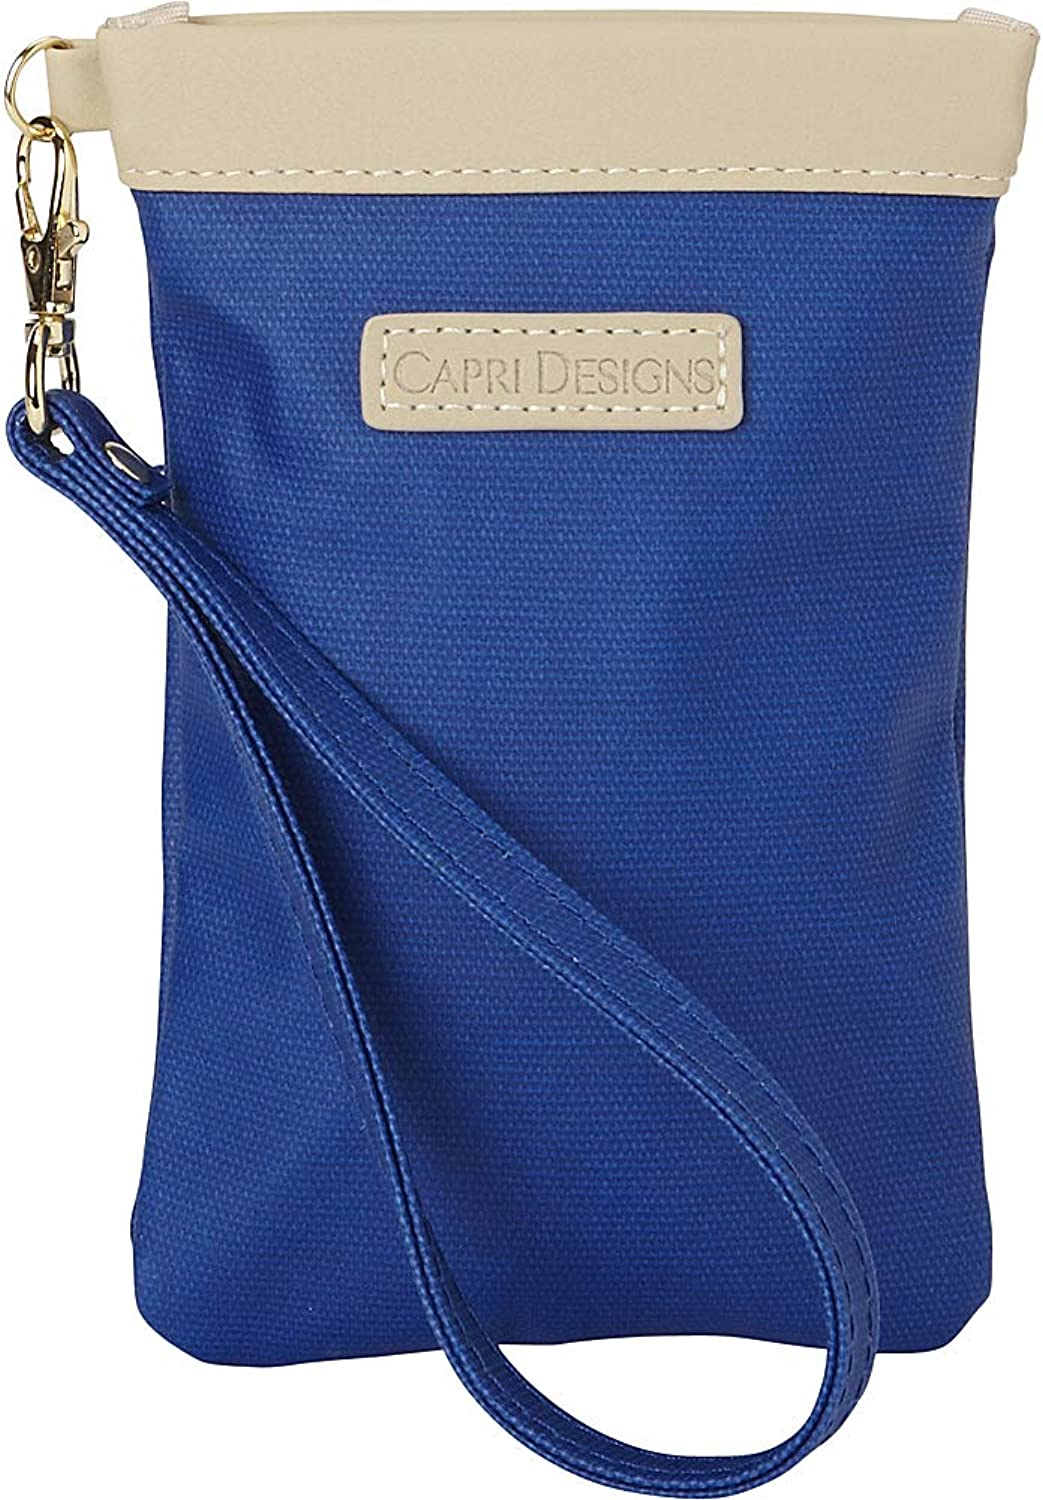 Capri Designs Eyeglass Carryall Case With Wristlet